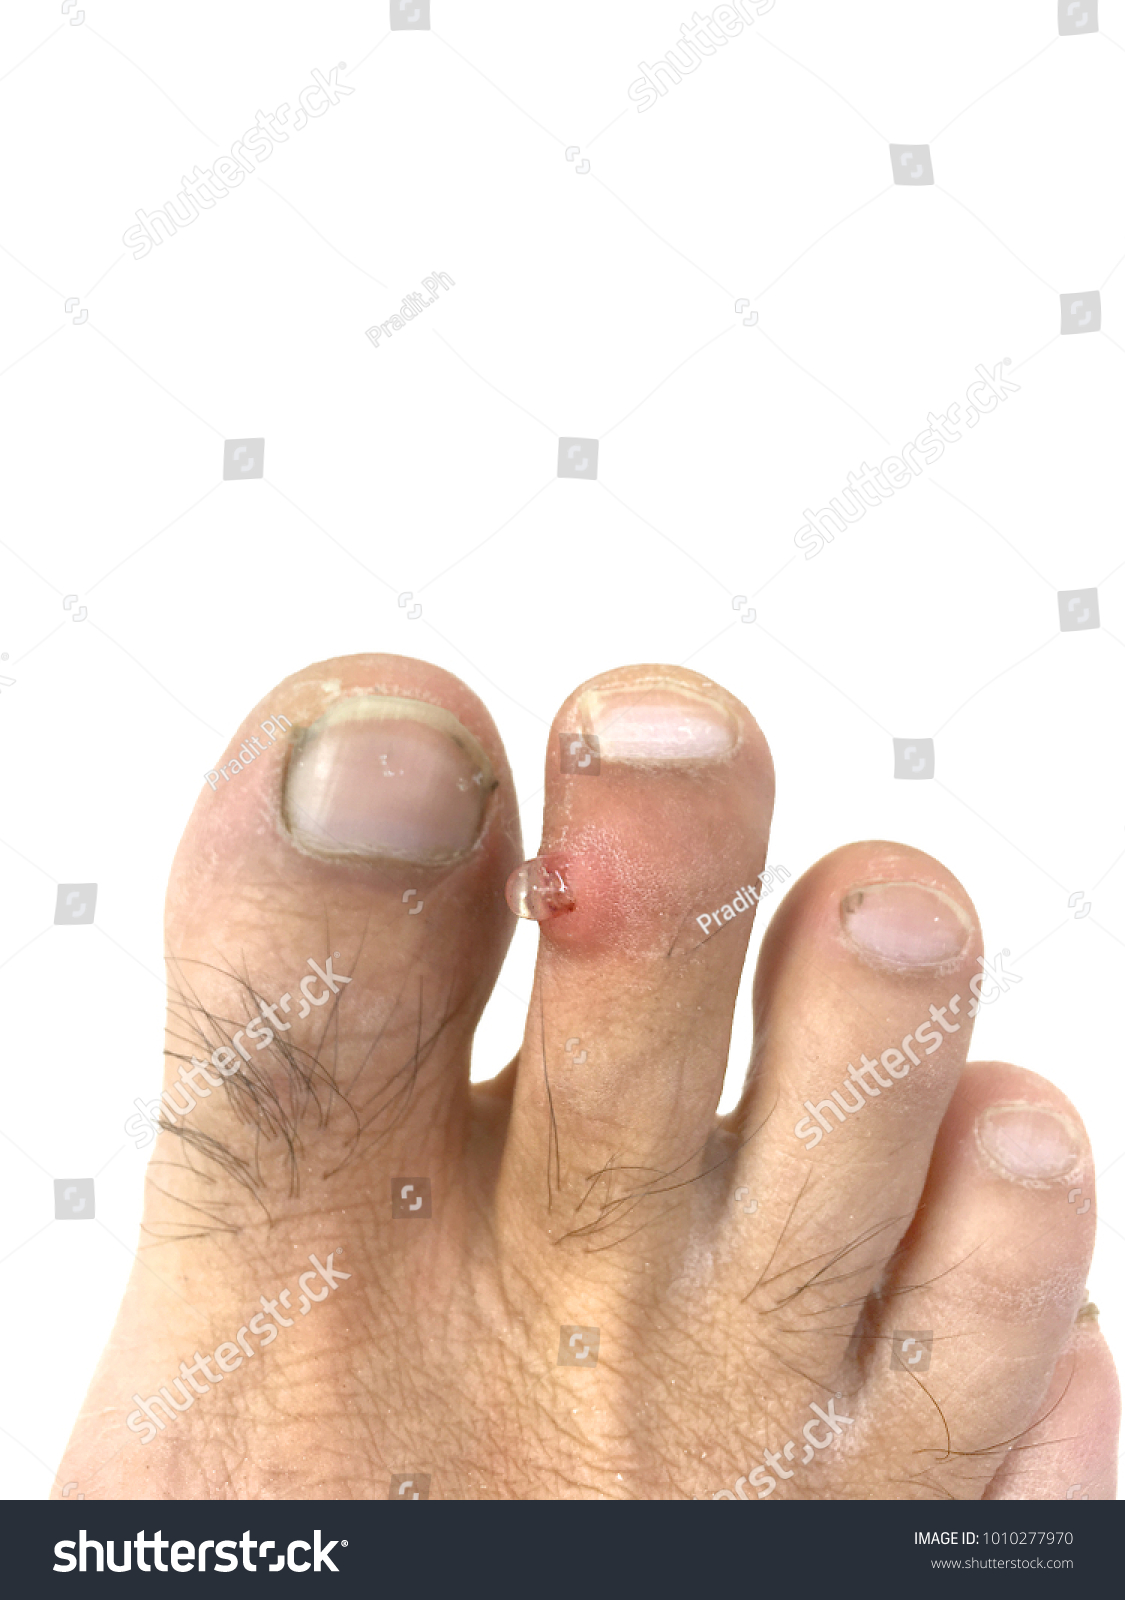 Bacteria Inflammation Infection Pus On Toe Stock Photo (Download Now ...